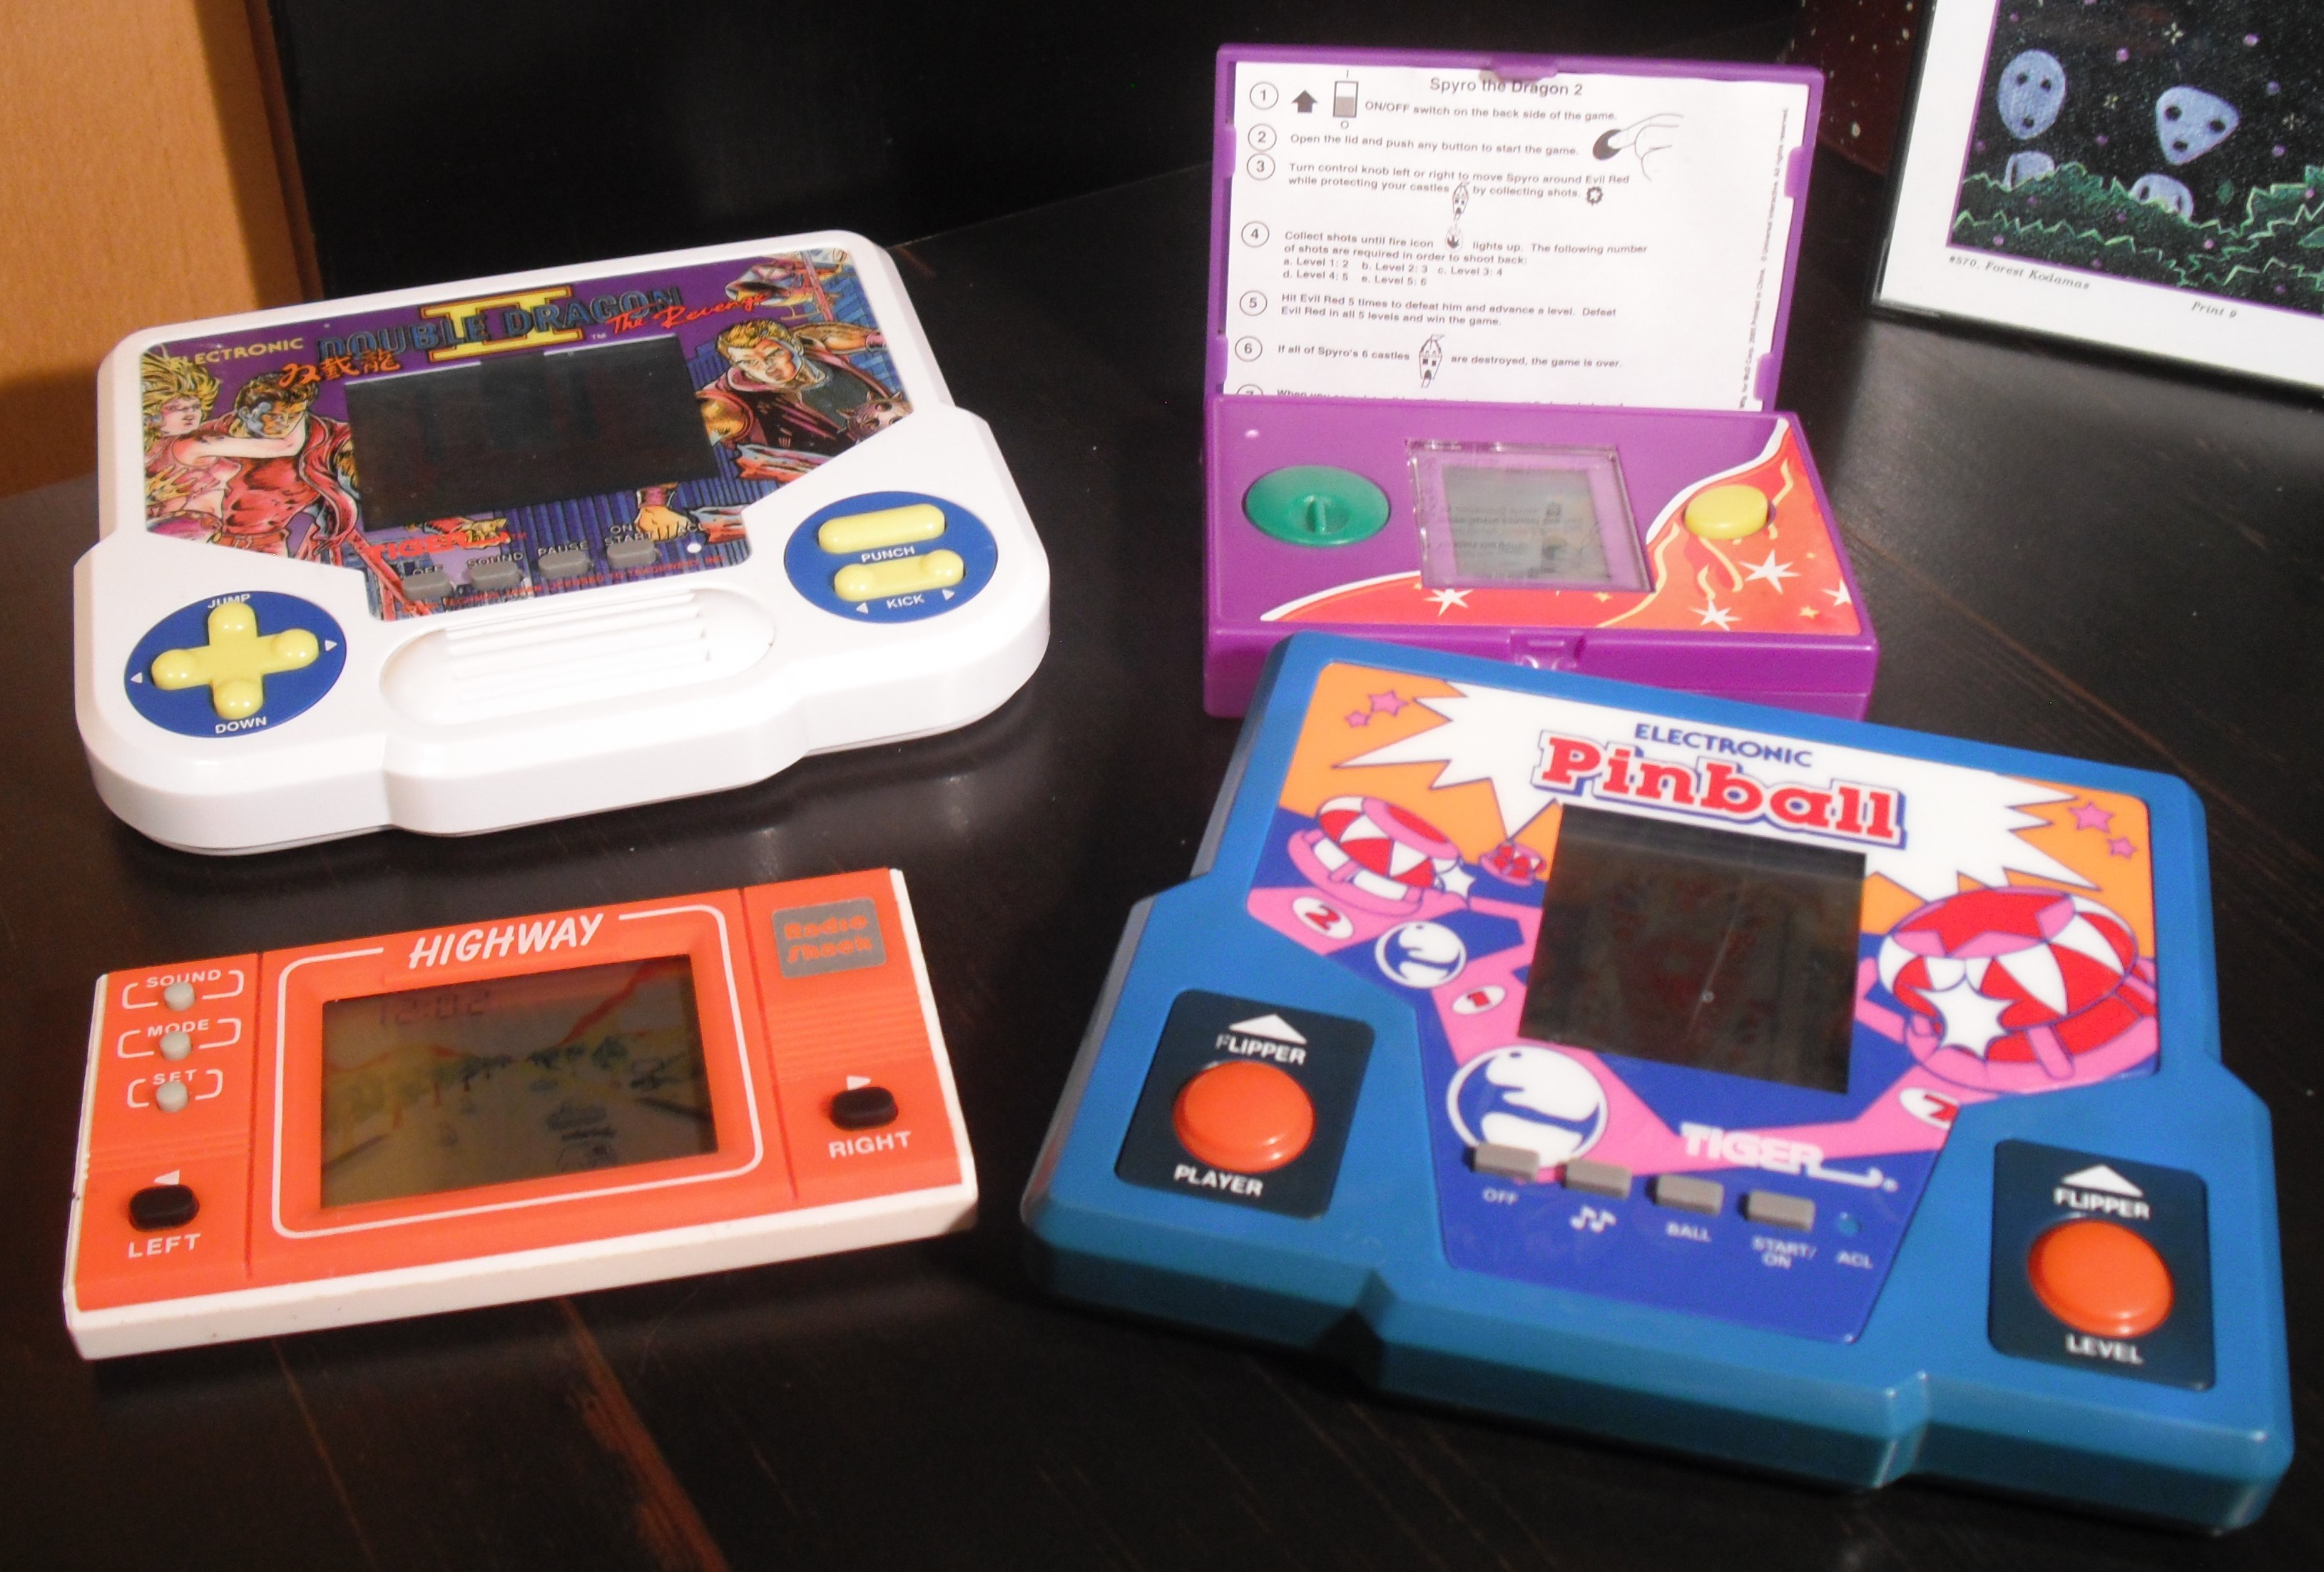 The Tiger Strikes Back! (LCD handheld games)